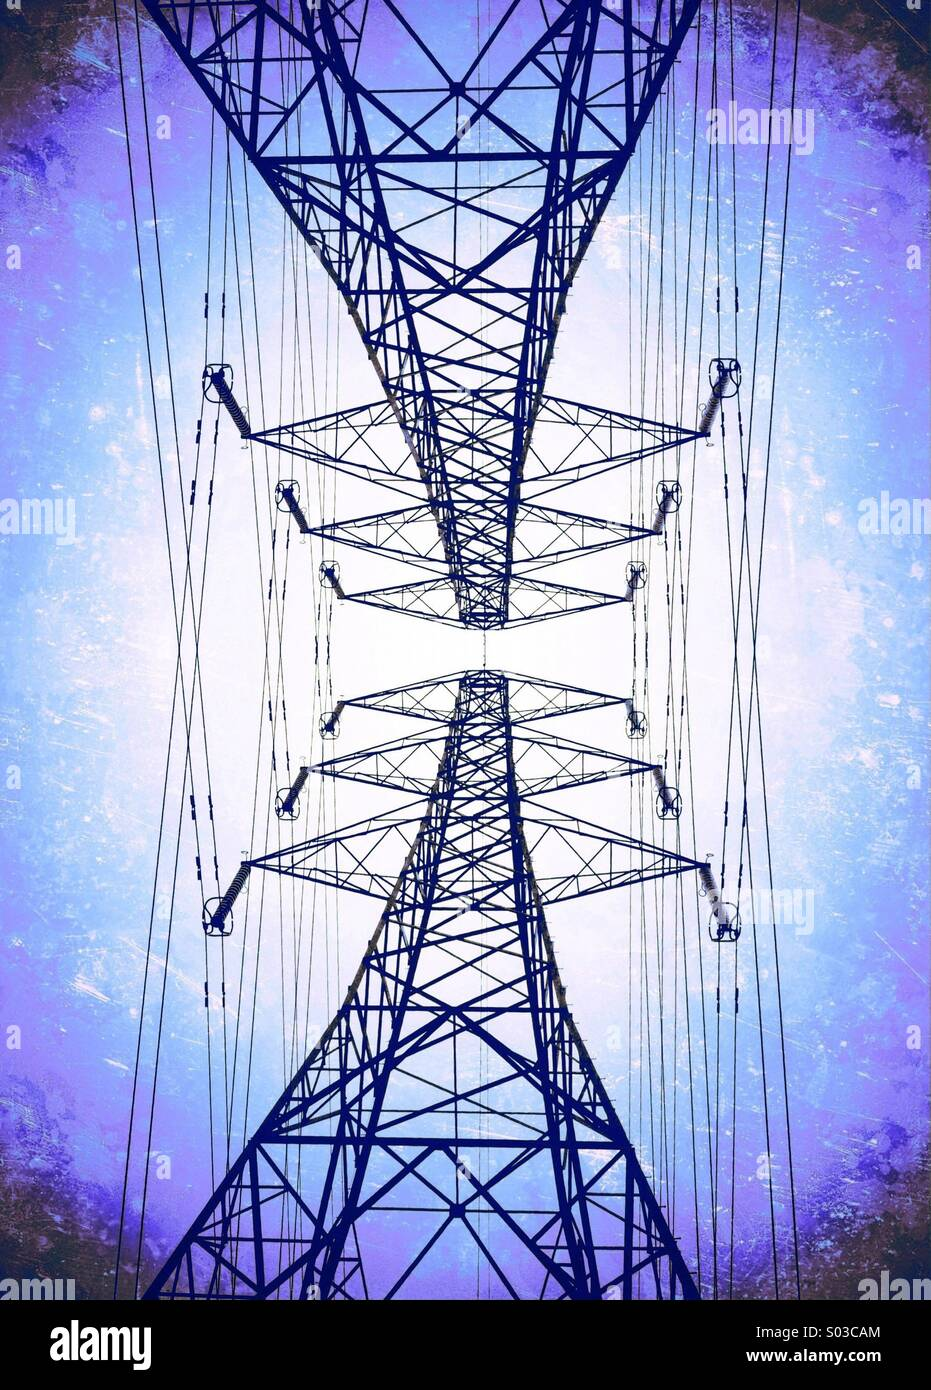 Pair of electricity pylons - Stock Image